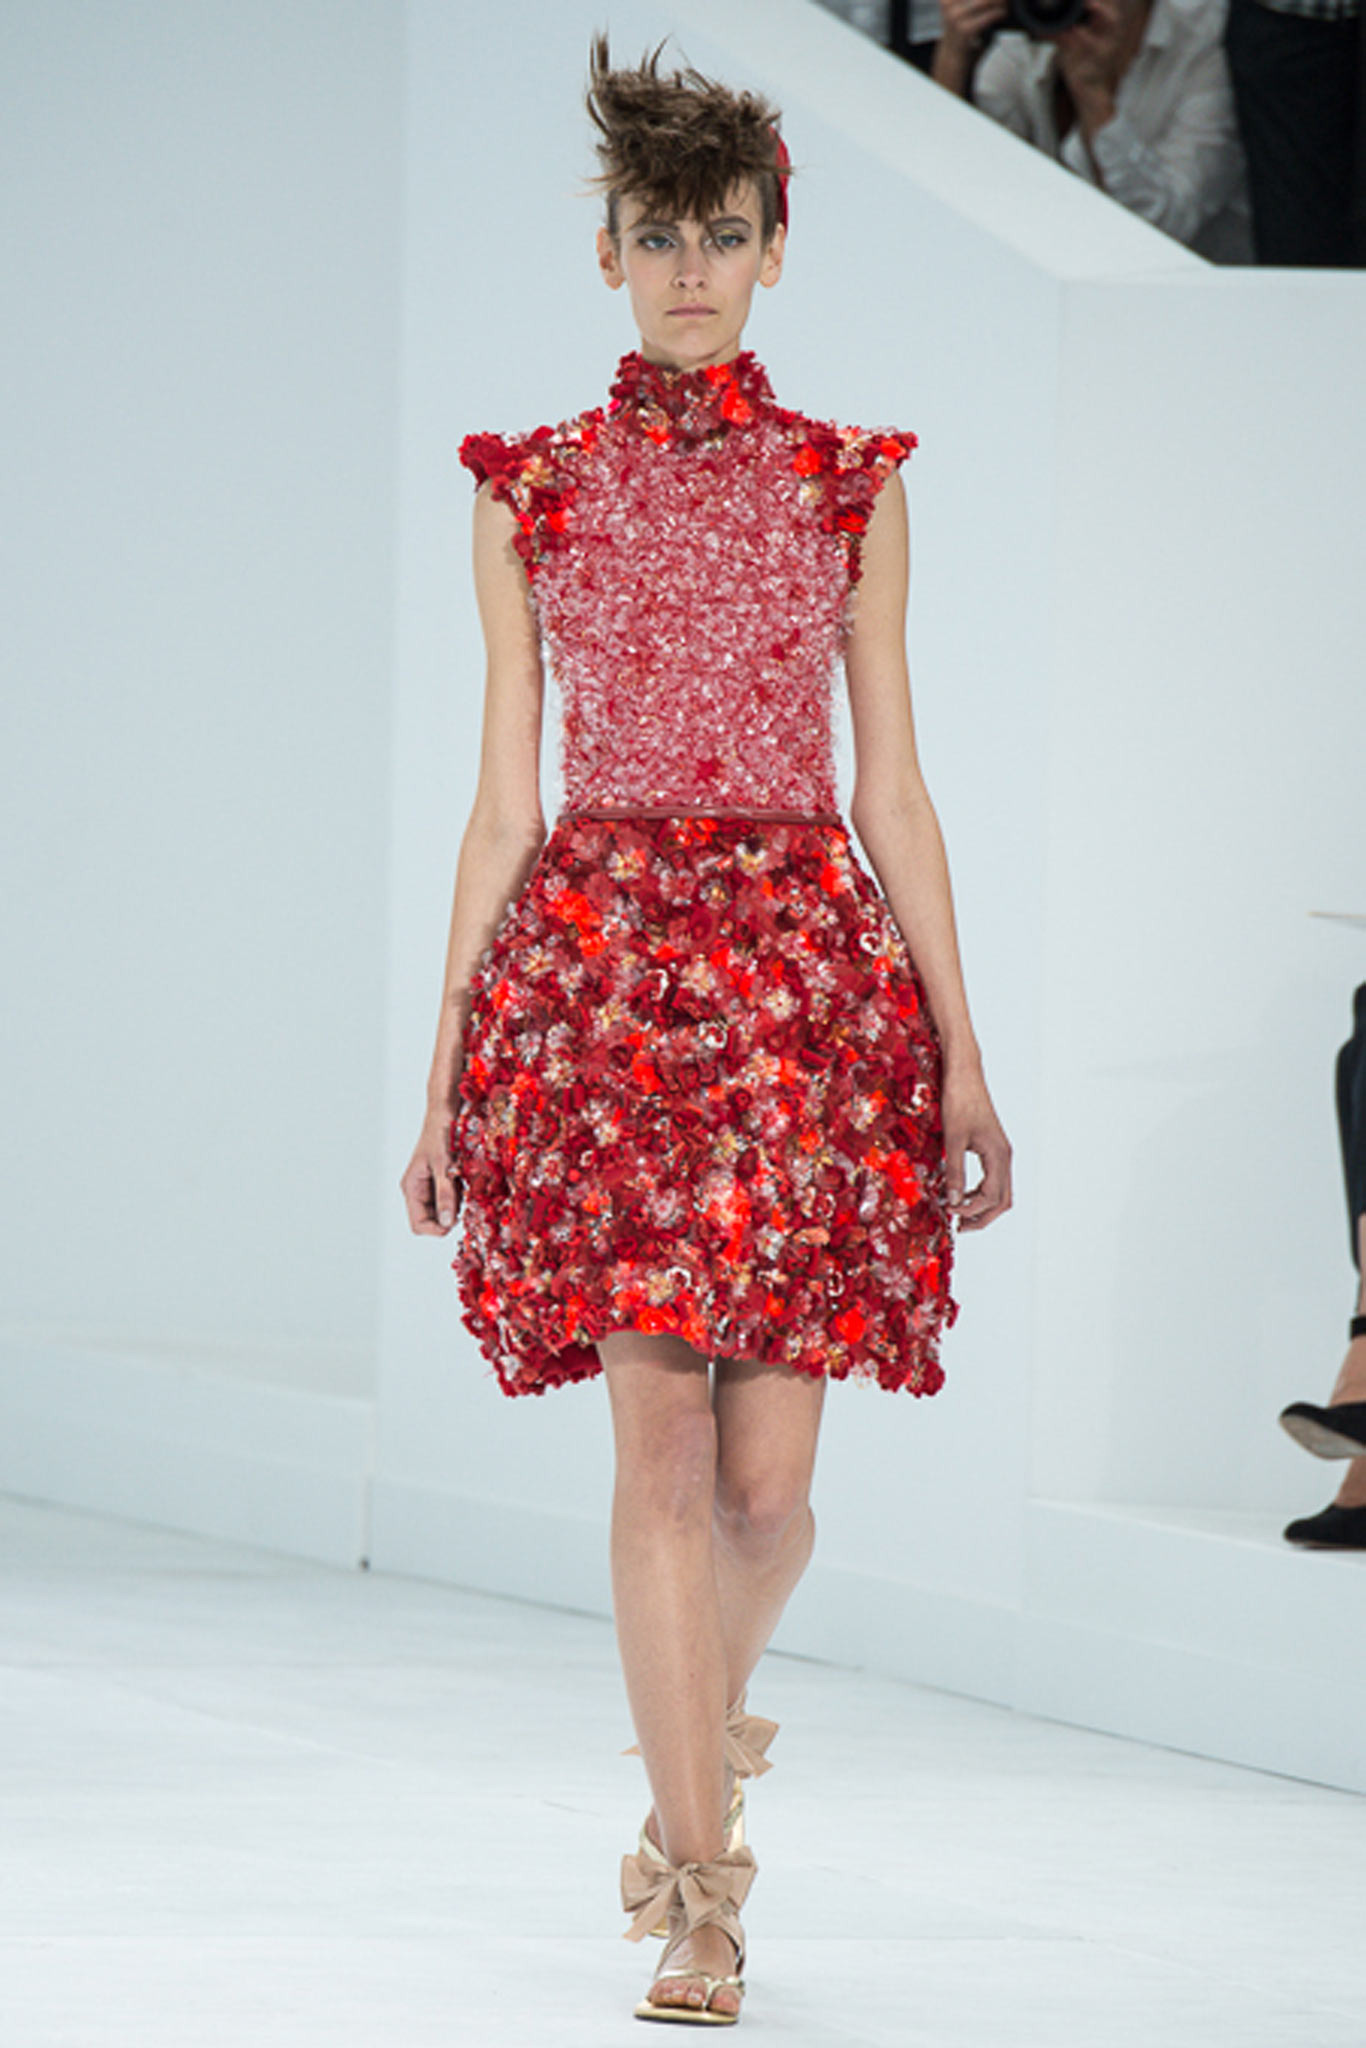 chanel-couture-fall-2014-43_105911370307